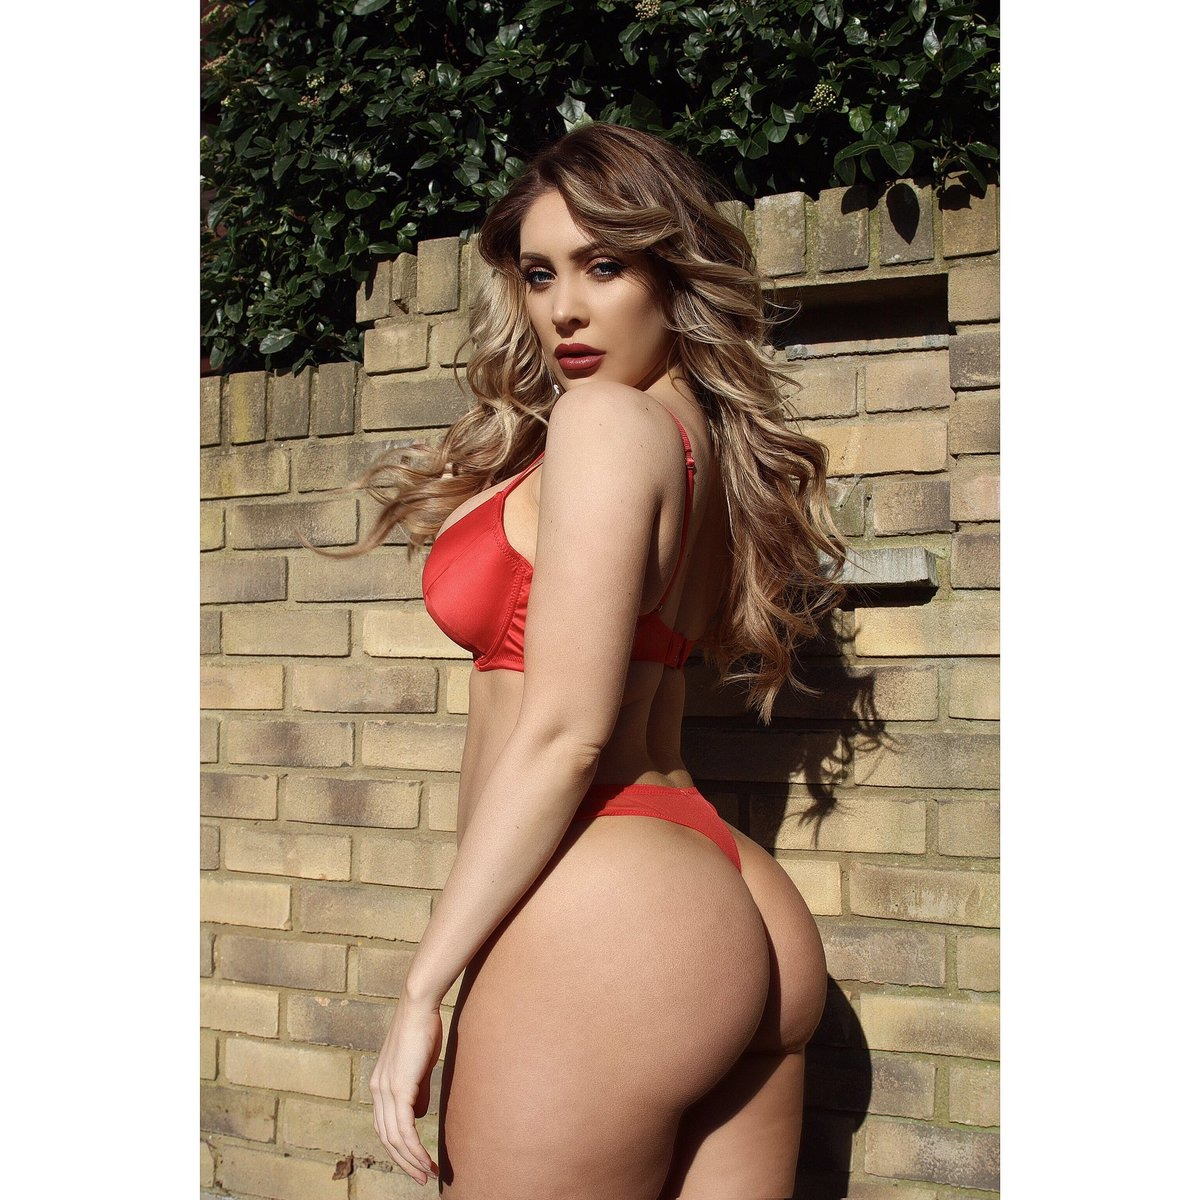 Ashley Emma hot blonde standing outdoors side on looking over shoulder wearing red bra and knickers curvy arse